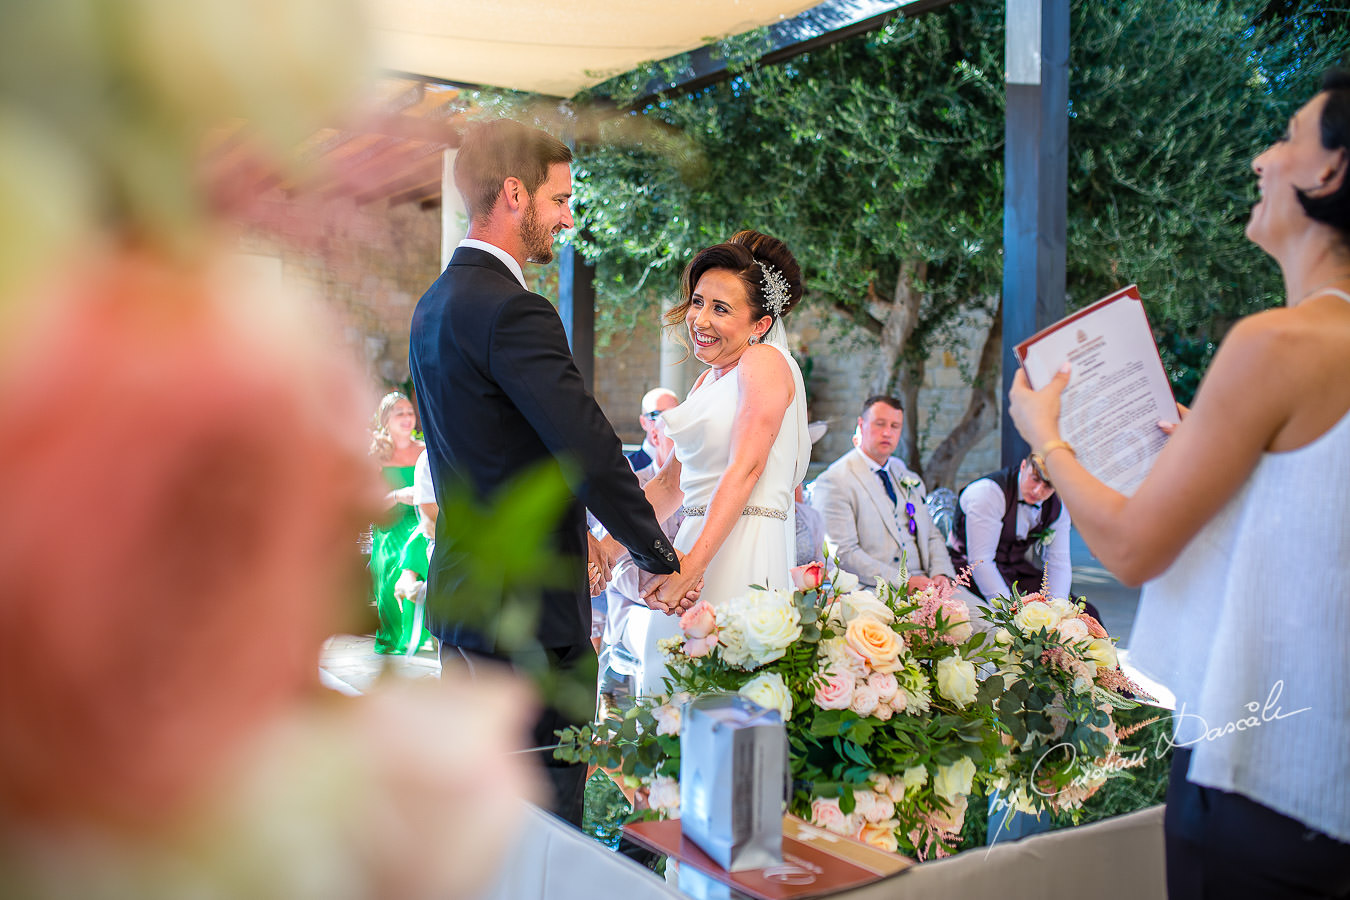 Funny wedding moments captured by Cristian Dascalu during an elegant Aphrodite Hills Wedding in Cyprus.